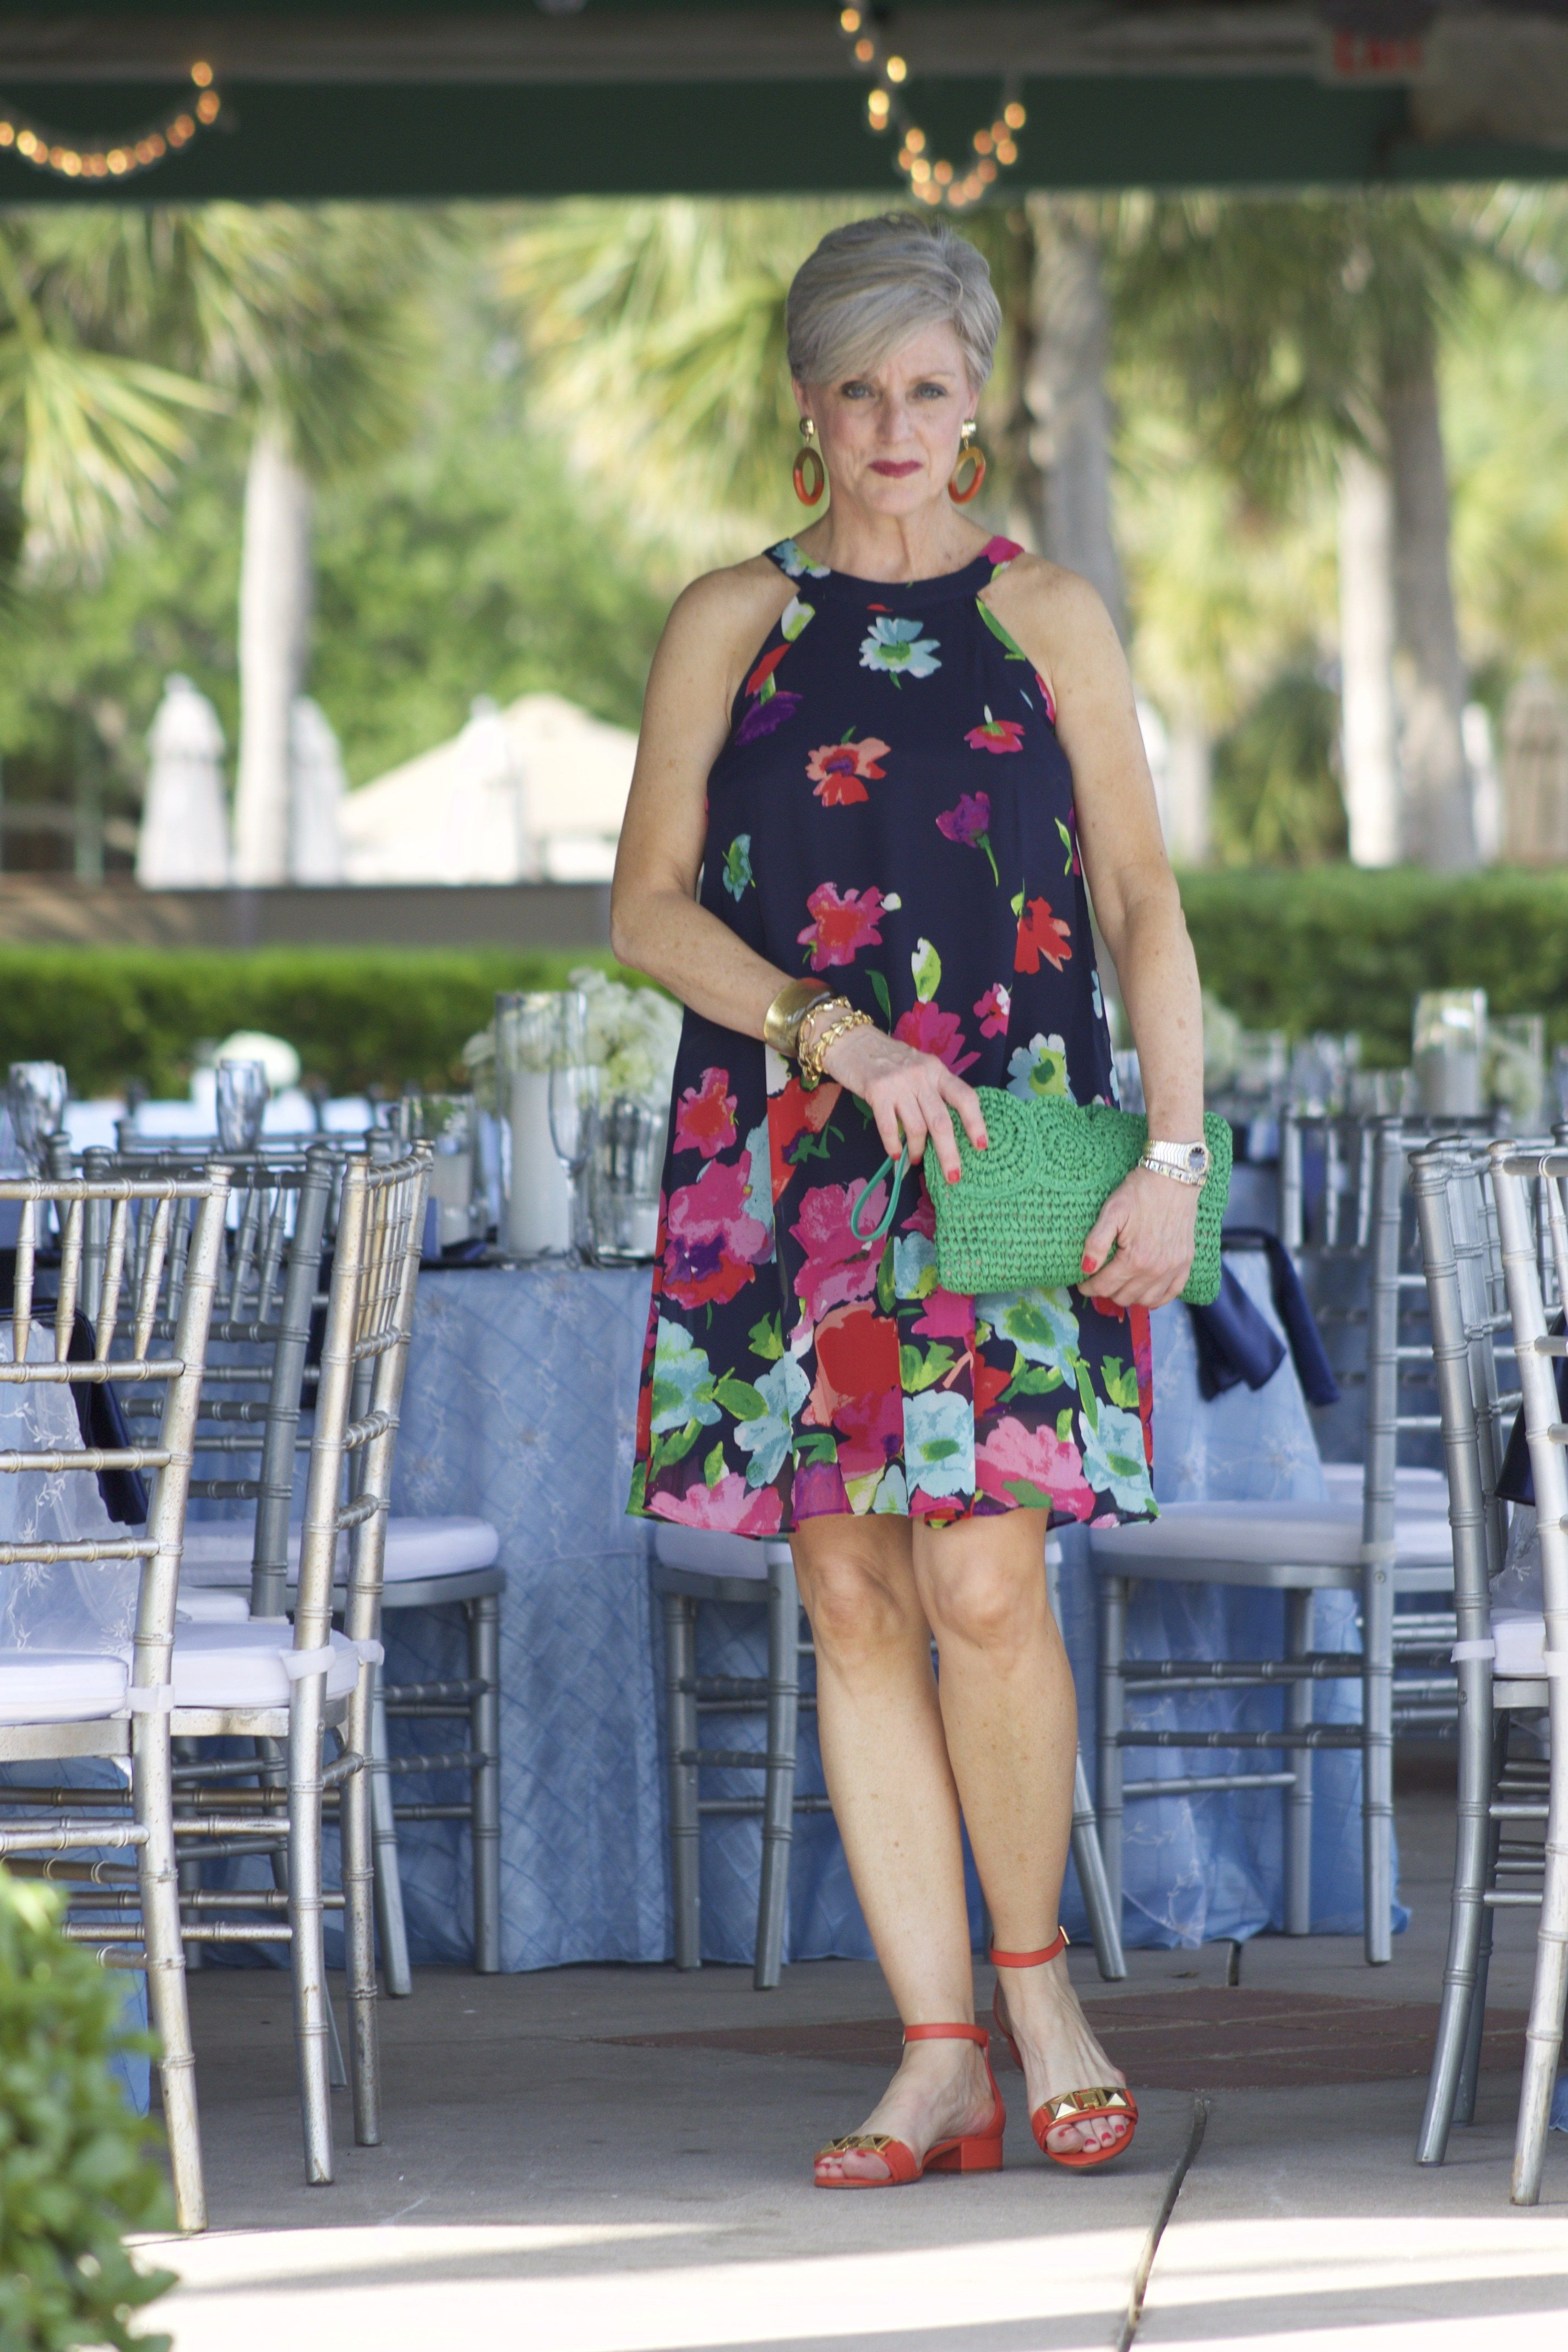 Color Crush Style At A Certain Age Fashion Summer Fashion Fashion Over 50 [ 4272 x 2848 Pixel ]